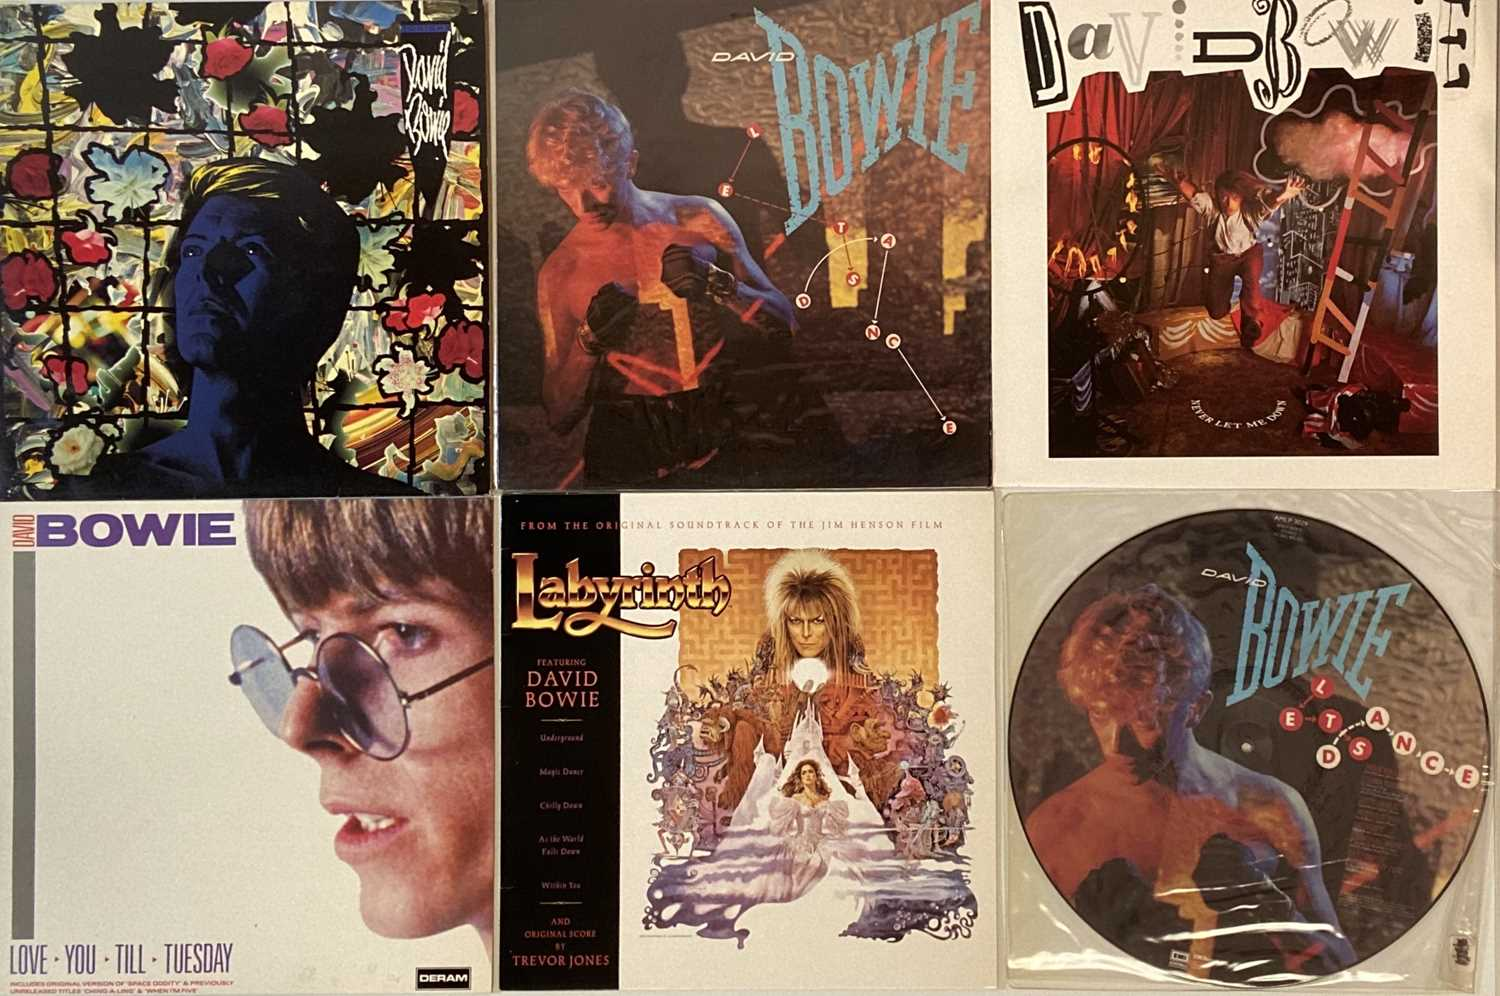 DAVID BOWIE - UK PRESSING LP COLLECTION - Image 3 of 7